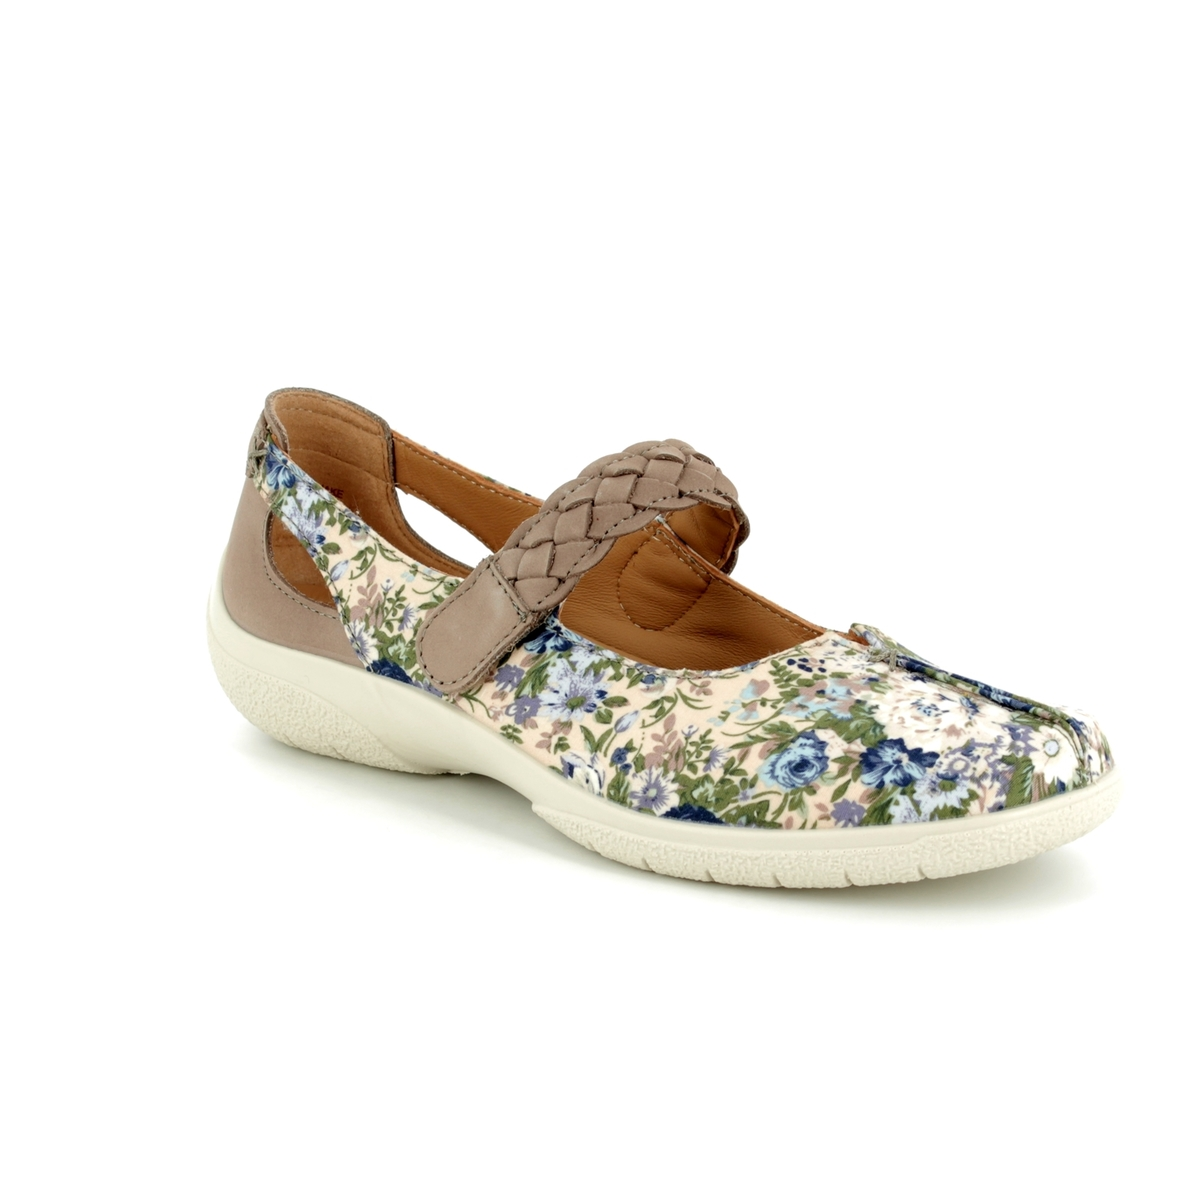 631f64368d Hotter Mary Jane Shoes - Floral nubuck - 8111/57 SHAKE E FIT